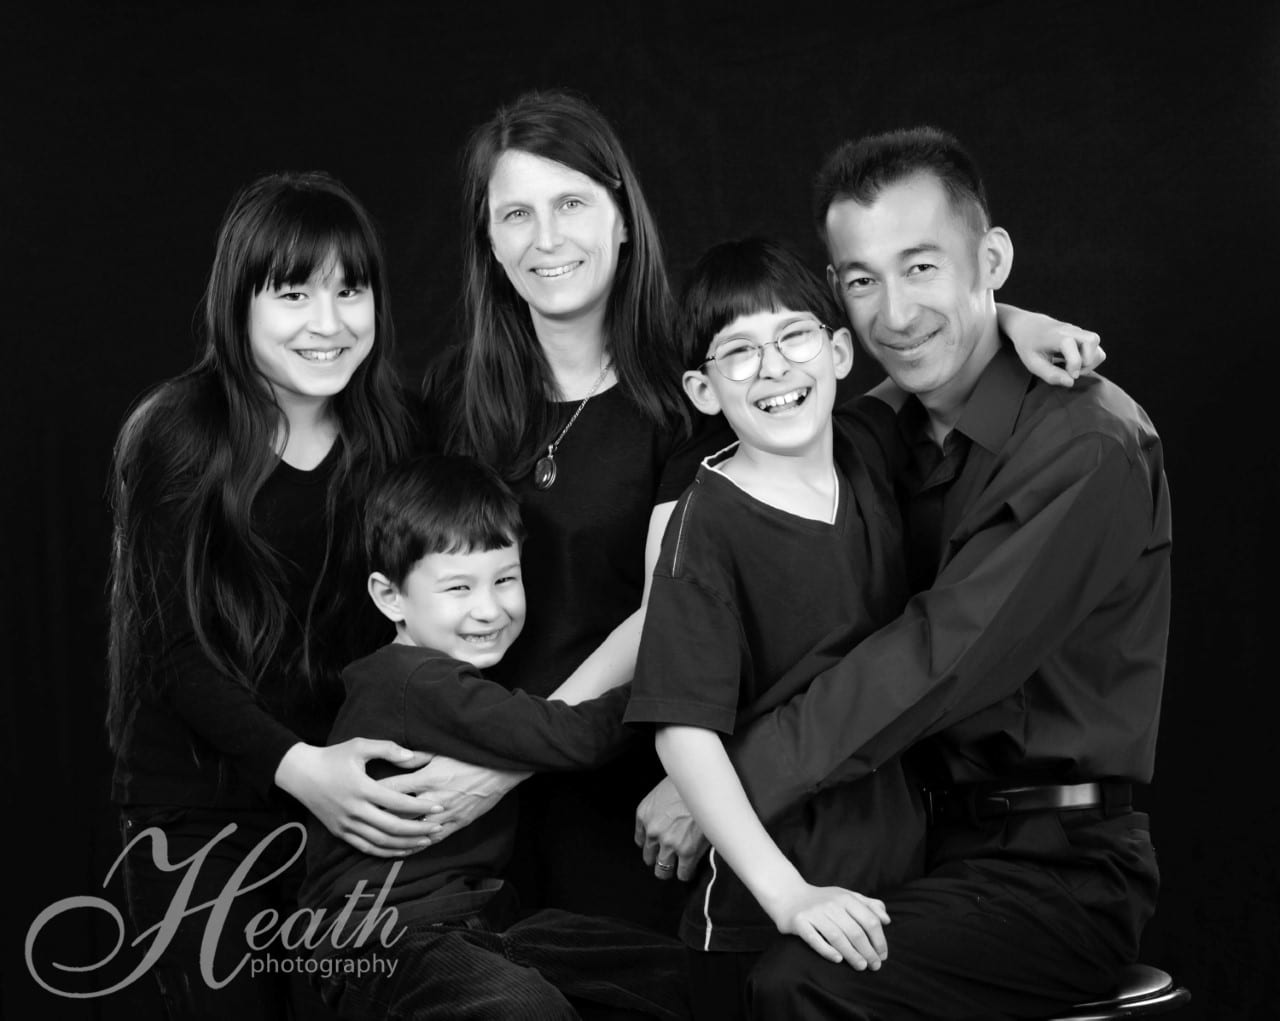 FAMILY SESSION & FRAMED PRINT <br/> Donated by: HEATH PHOTOGRAPHY <br/> Valued at: $390